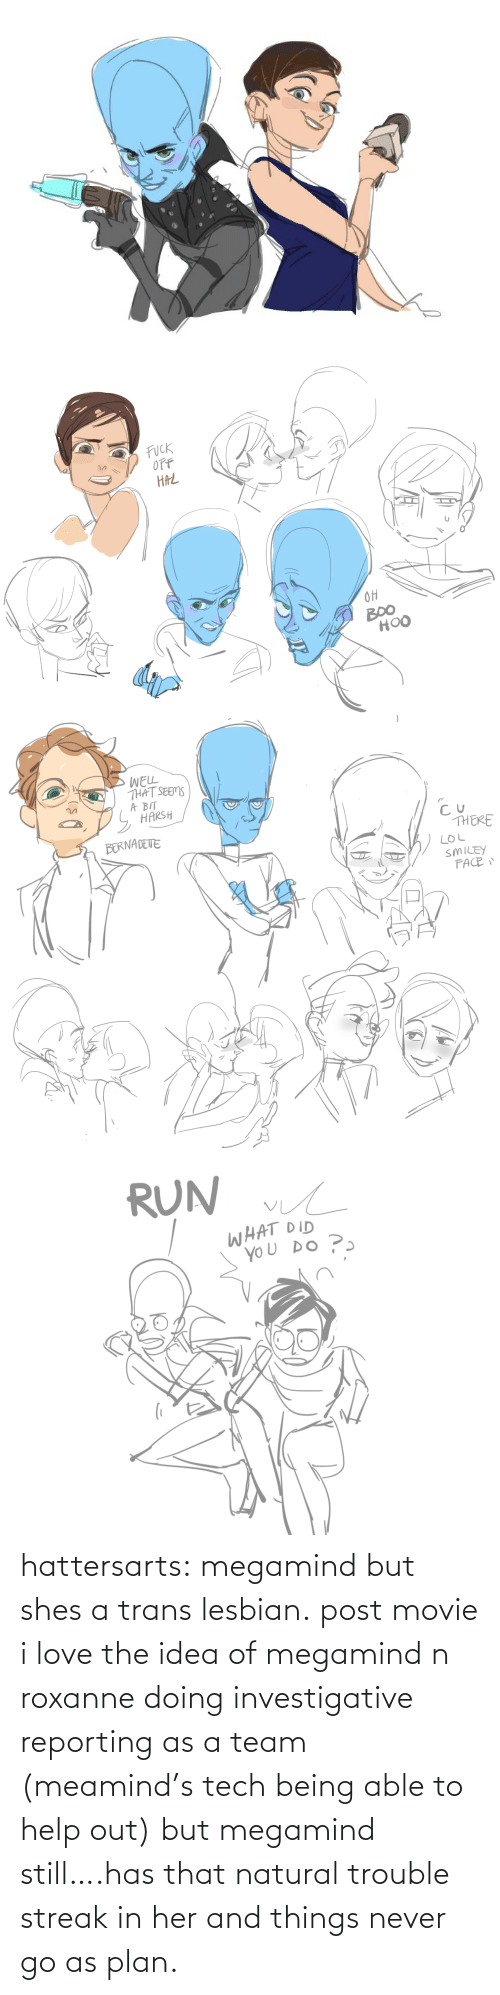 a team: hattersarts:  megamind but shes a trans lesbian.  post movie i love the idea of megamind n roxanne doing investigative reporting as a team (meamind's tech being able to help out) but megamind still….has that natural trouble streak in her and things never go as plan.